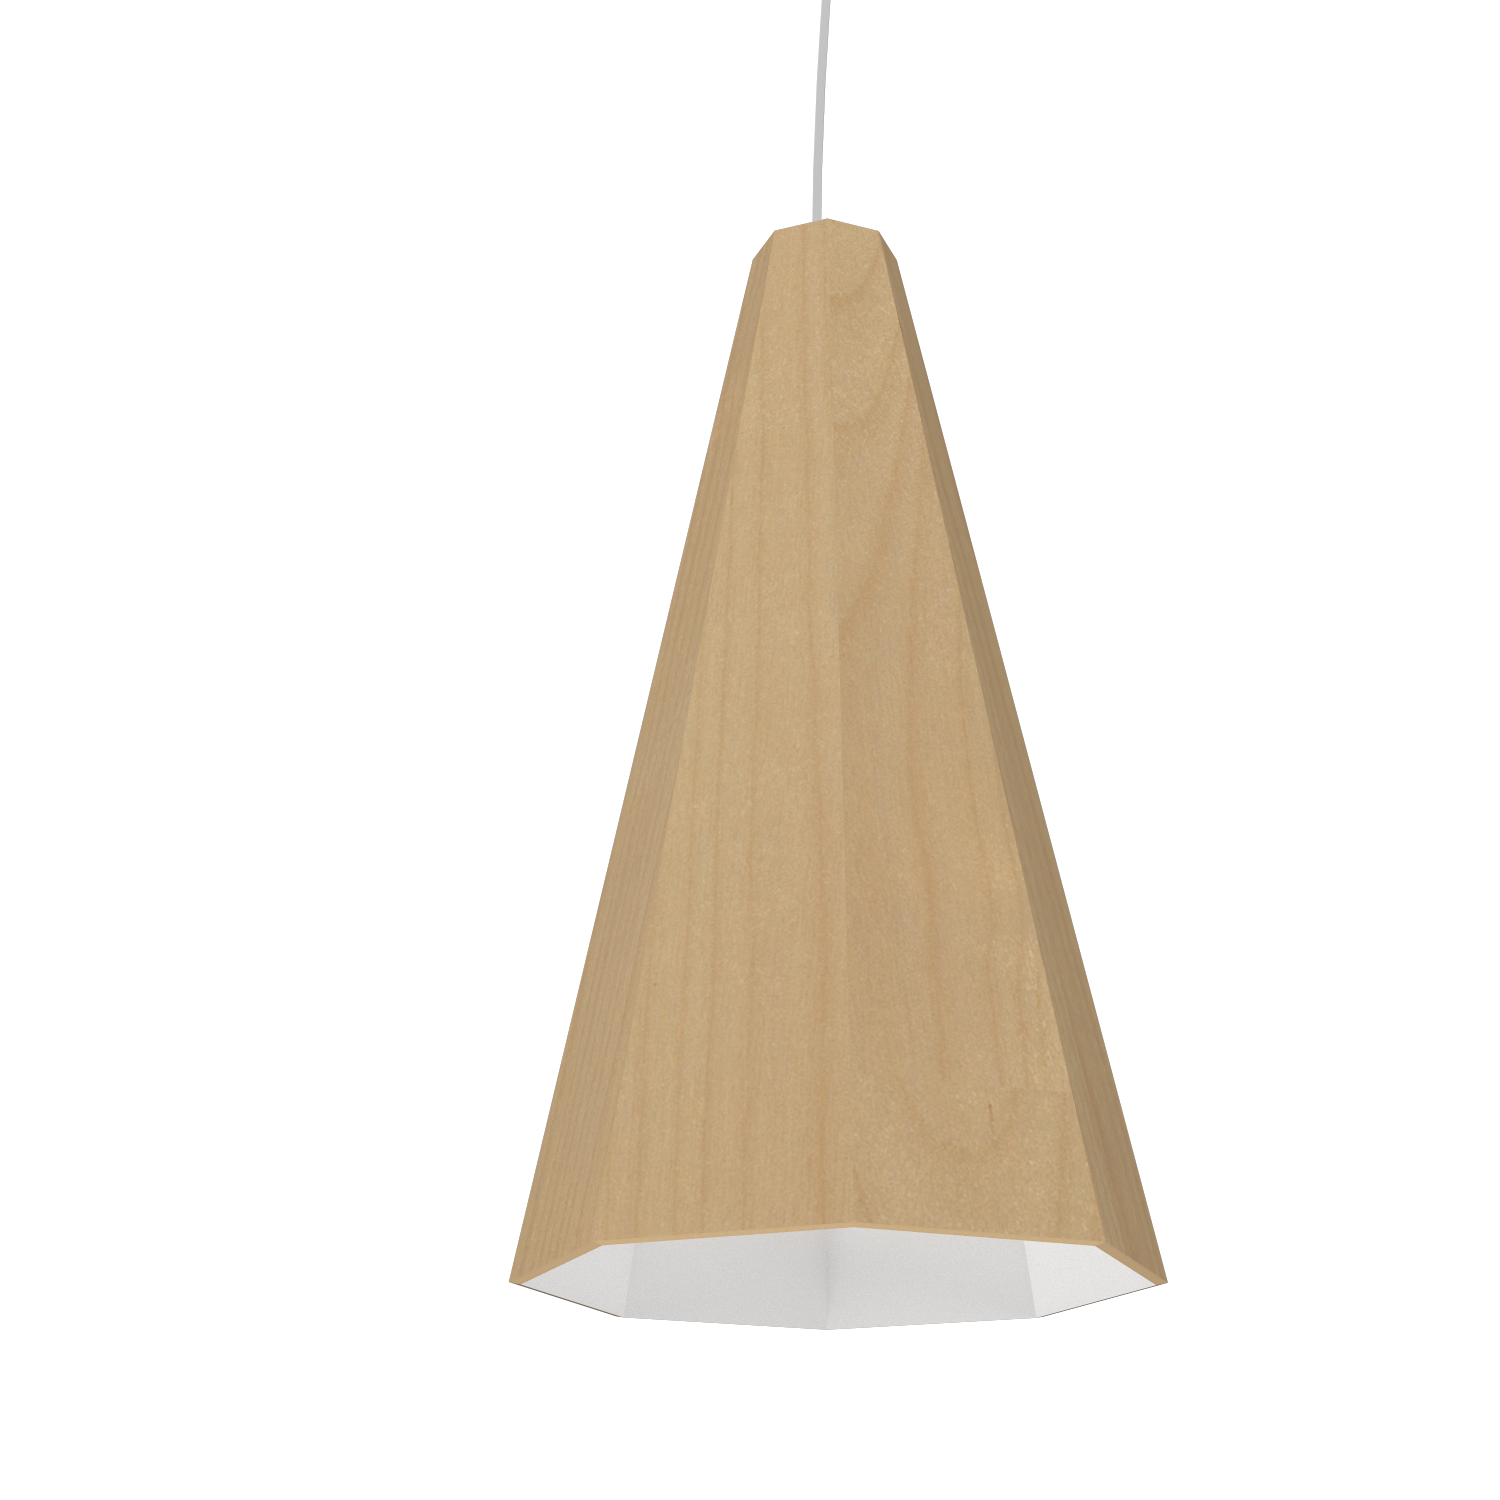 Pendant Lamp Accord Facetado 1231 - Facetada Line Accord Lighting | 34. Maple